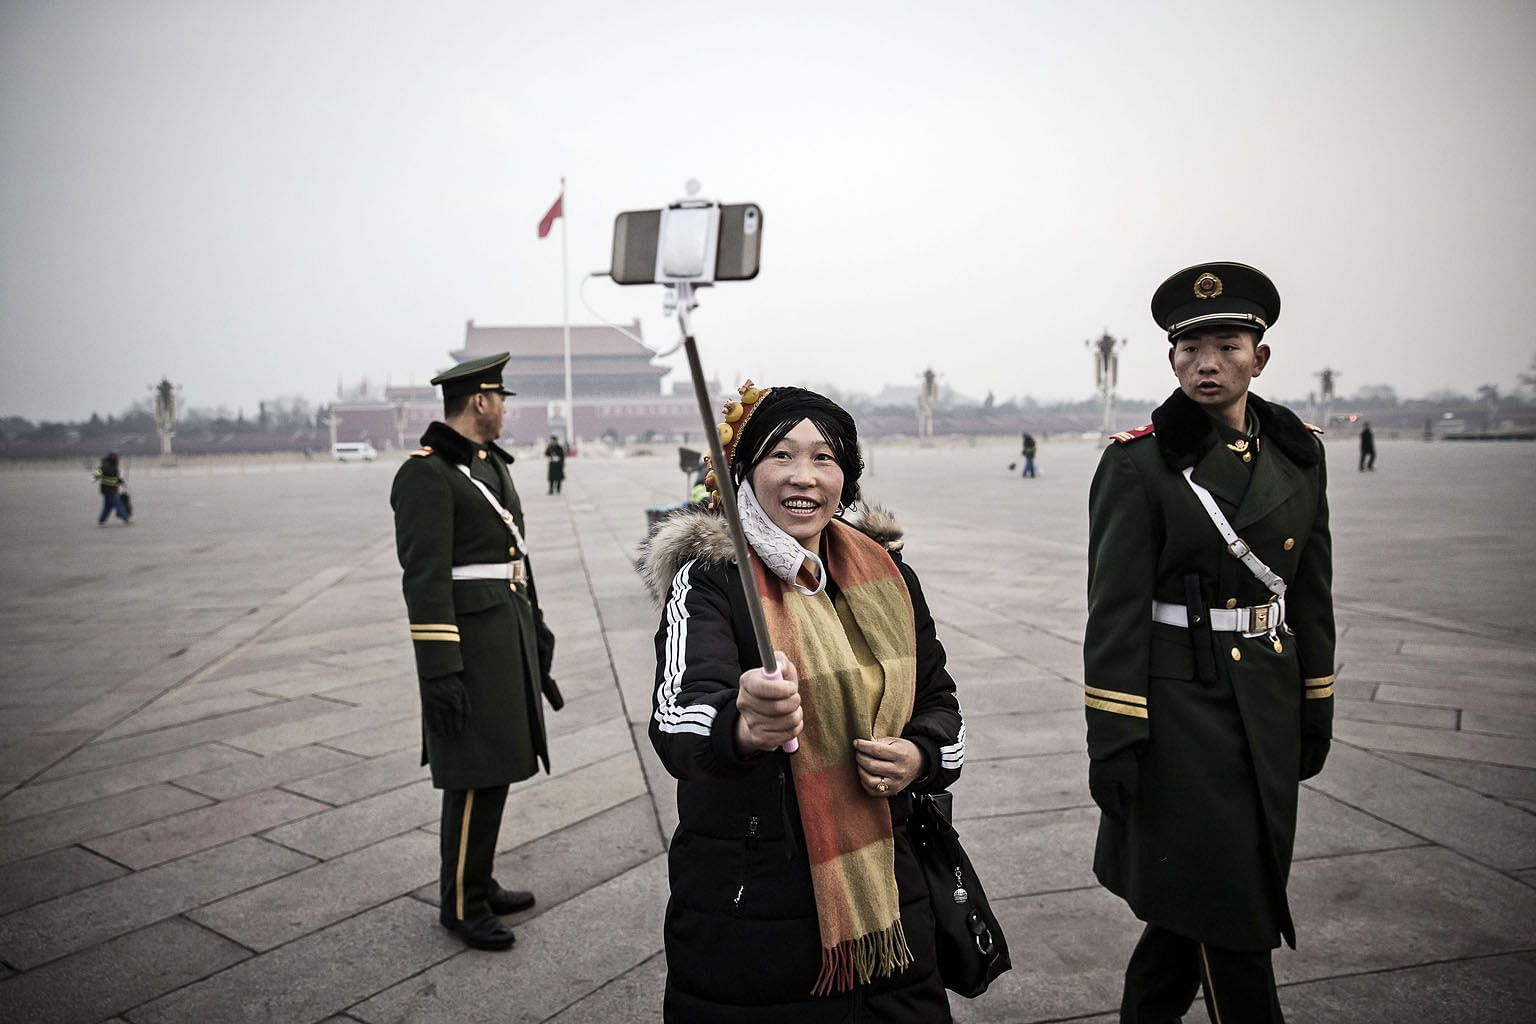 A visitor to Tiananmen Square on Thursday using a smartphone on a selfie stick to capture a shot with a paramilitary police officer after the daily flag-raising ceremony there.